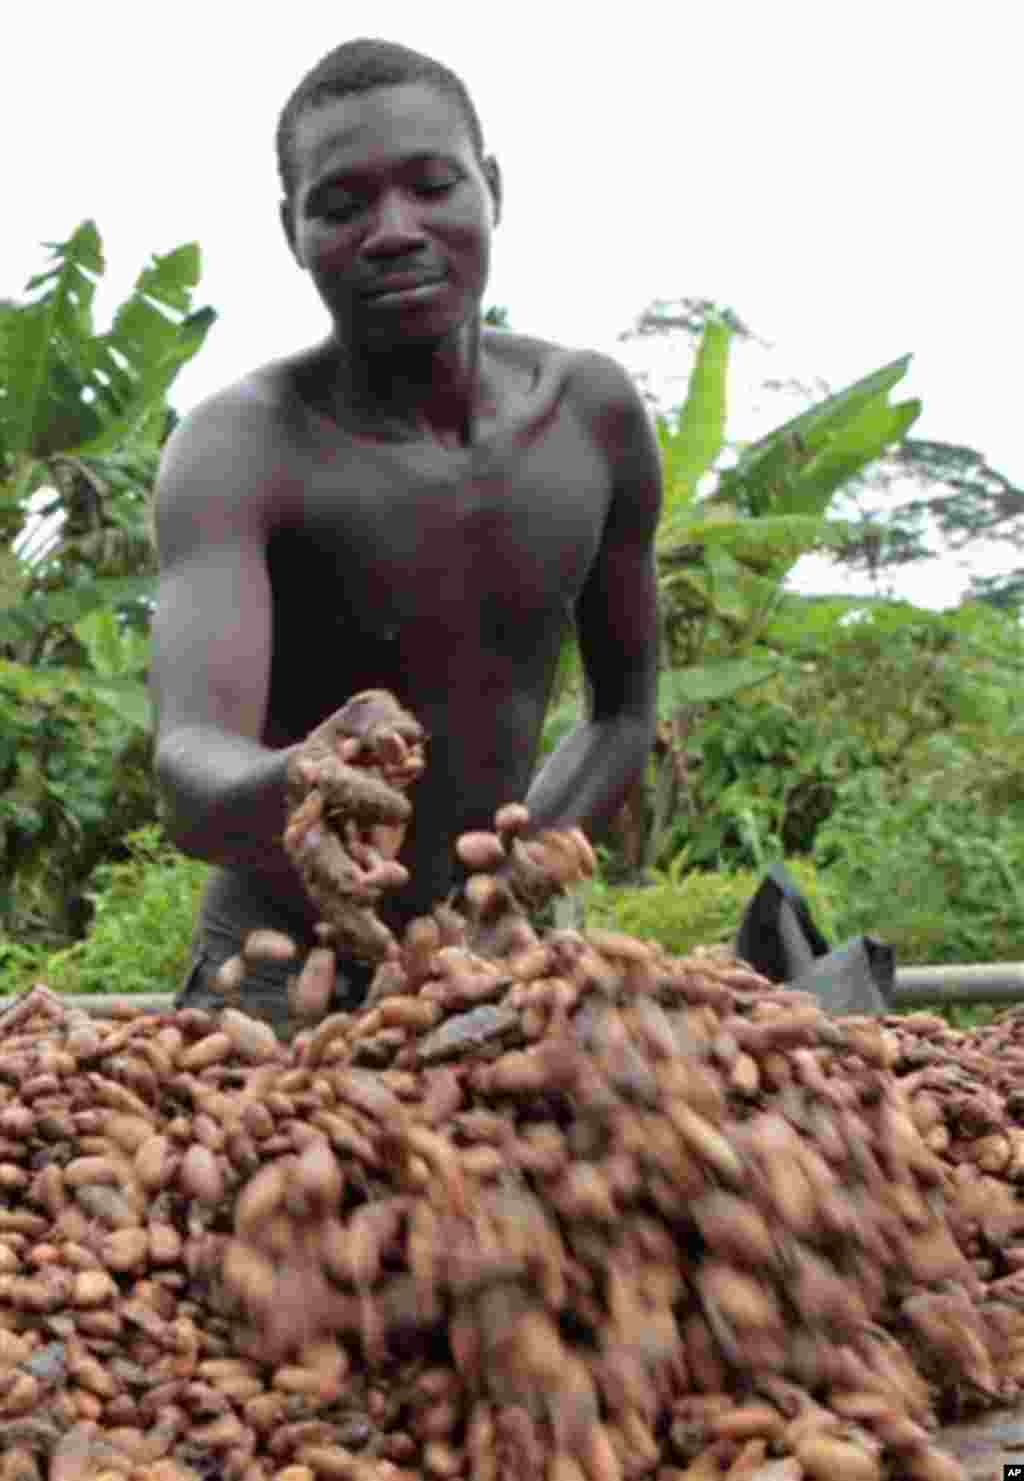 Farmer Issiaka Ouedraogo arranges cocoa beans, laid out to dry on reed mats, on a cocoa farm outside the village of Fangolo, near Duekoue Ivory Coast, May 31, 2011.